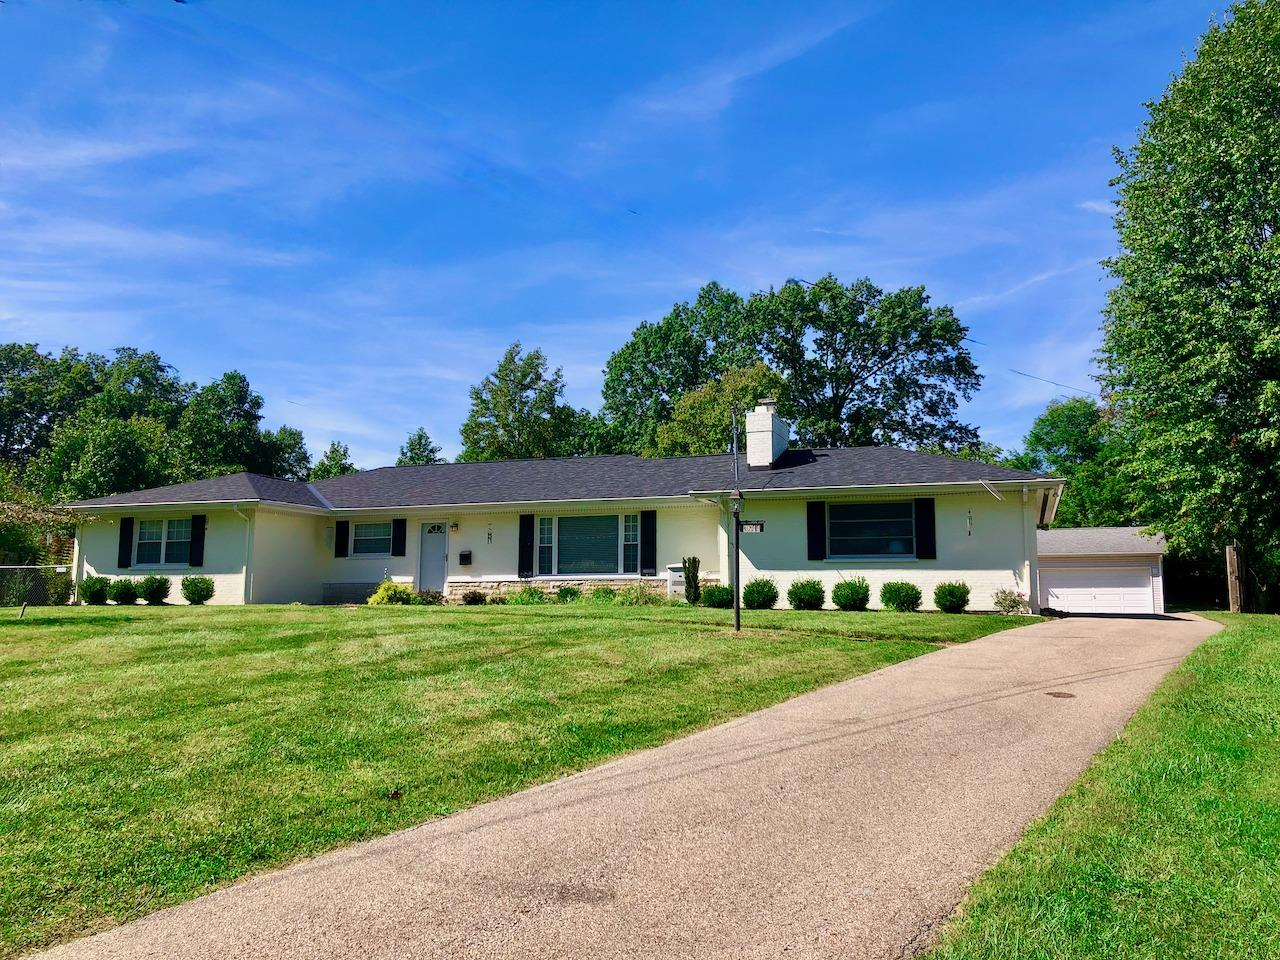 3644 Langhorst Court, Sycamore Twp, Ohio 45236, 3 Bedrooms Bedrooms, 9 Rooms Rooms,2 BathroomsBathrooms,Single Family Residence,For Sale,Langhorst,1718390